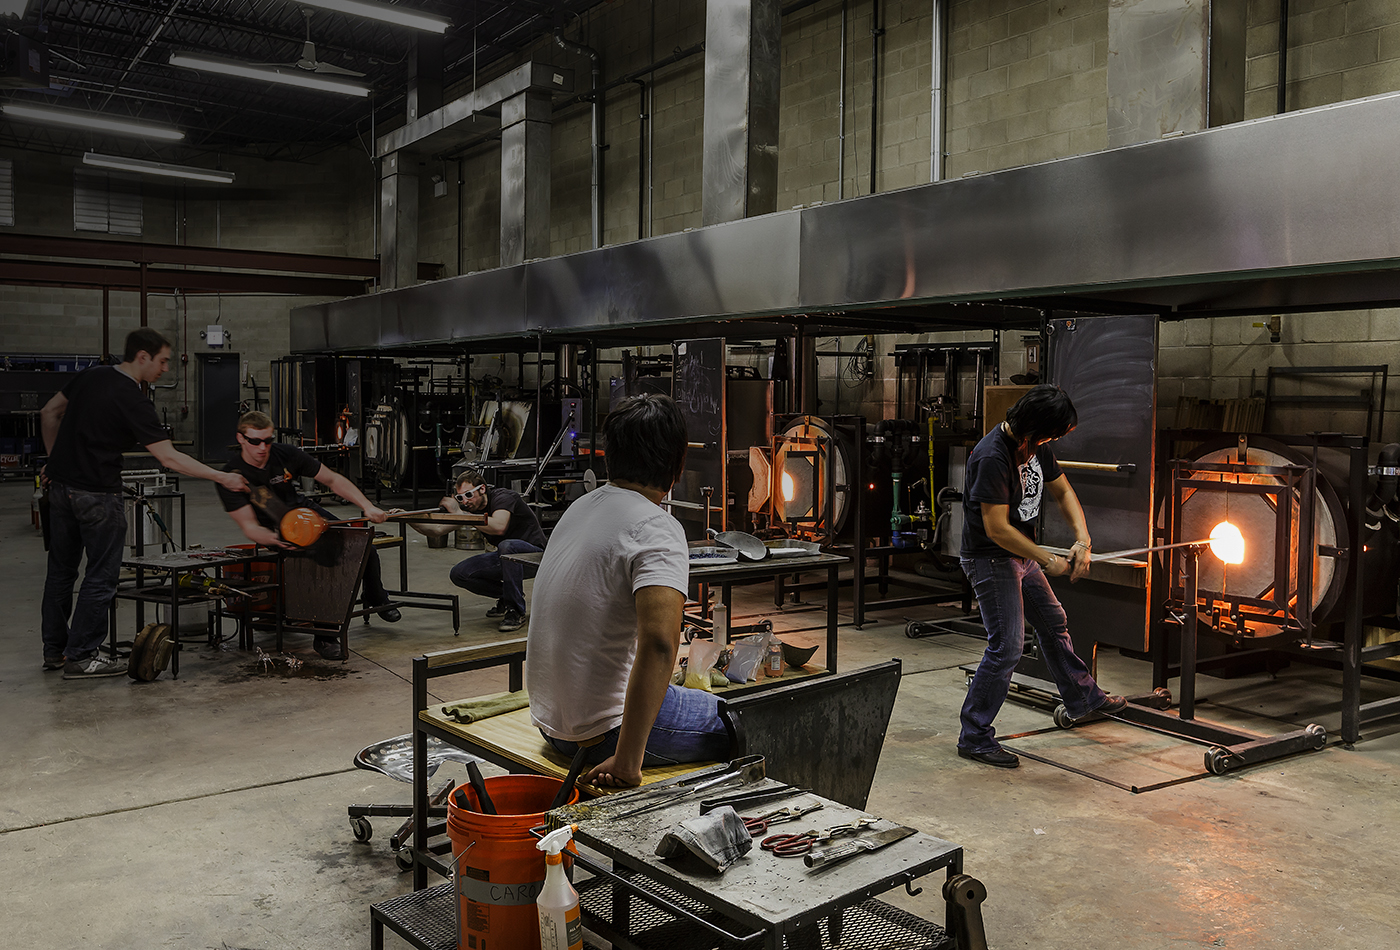 Ignite Features A 15000 Sf Studio With Two Furnaces Four Glass Warming Glory Holes That Reach 2200 Degrees Fahrenheit And As Well As In House Artists